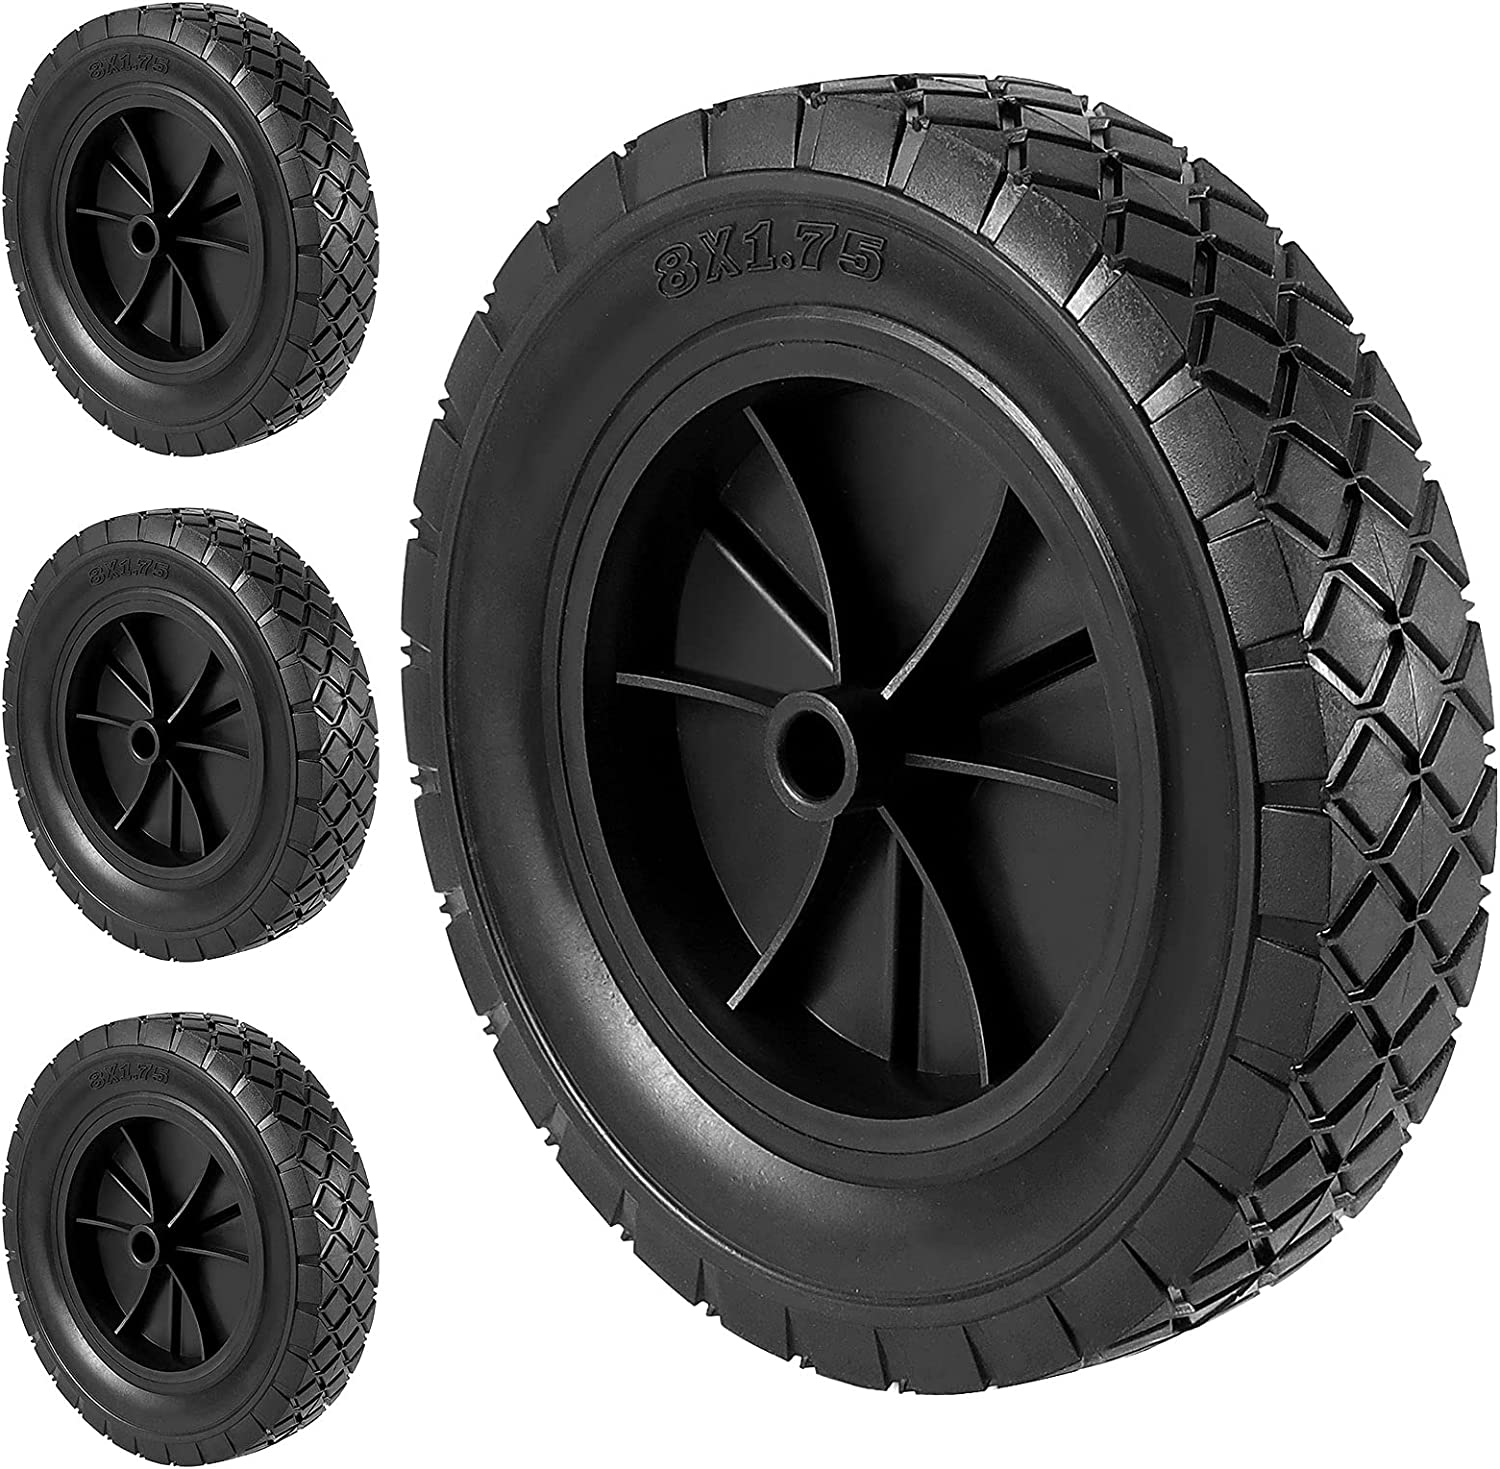 HOIGON 4 PCS 8 x 1.75 Inch Solid Rubber Hand Truck Wheel, Universal Replacement Tires Wheels for 1/2 Inch Axle, Lawn Mower Wheels for Garden Recliner, Dolly, Compressor, 110 LBS Load Capacity